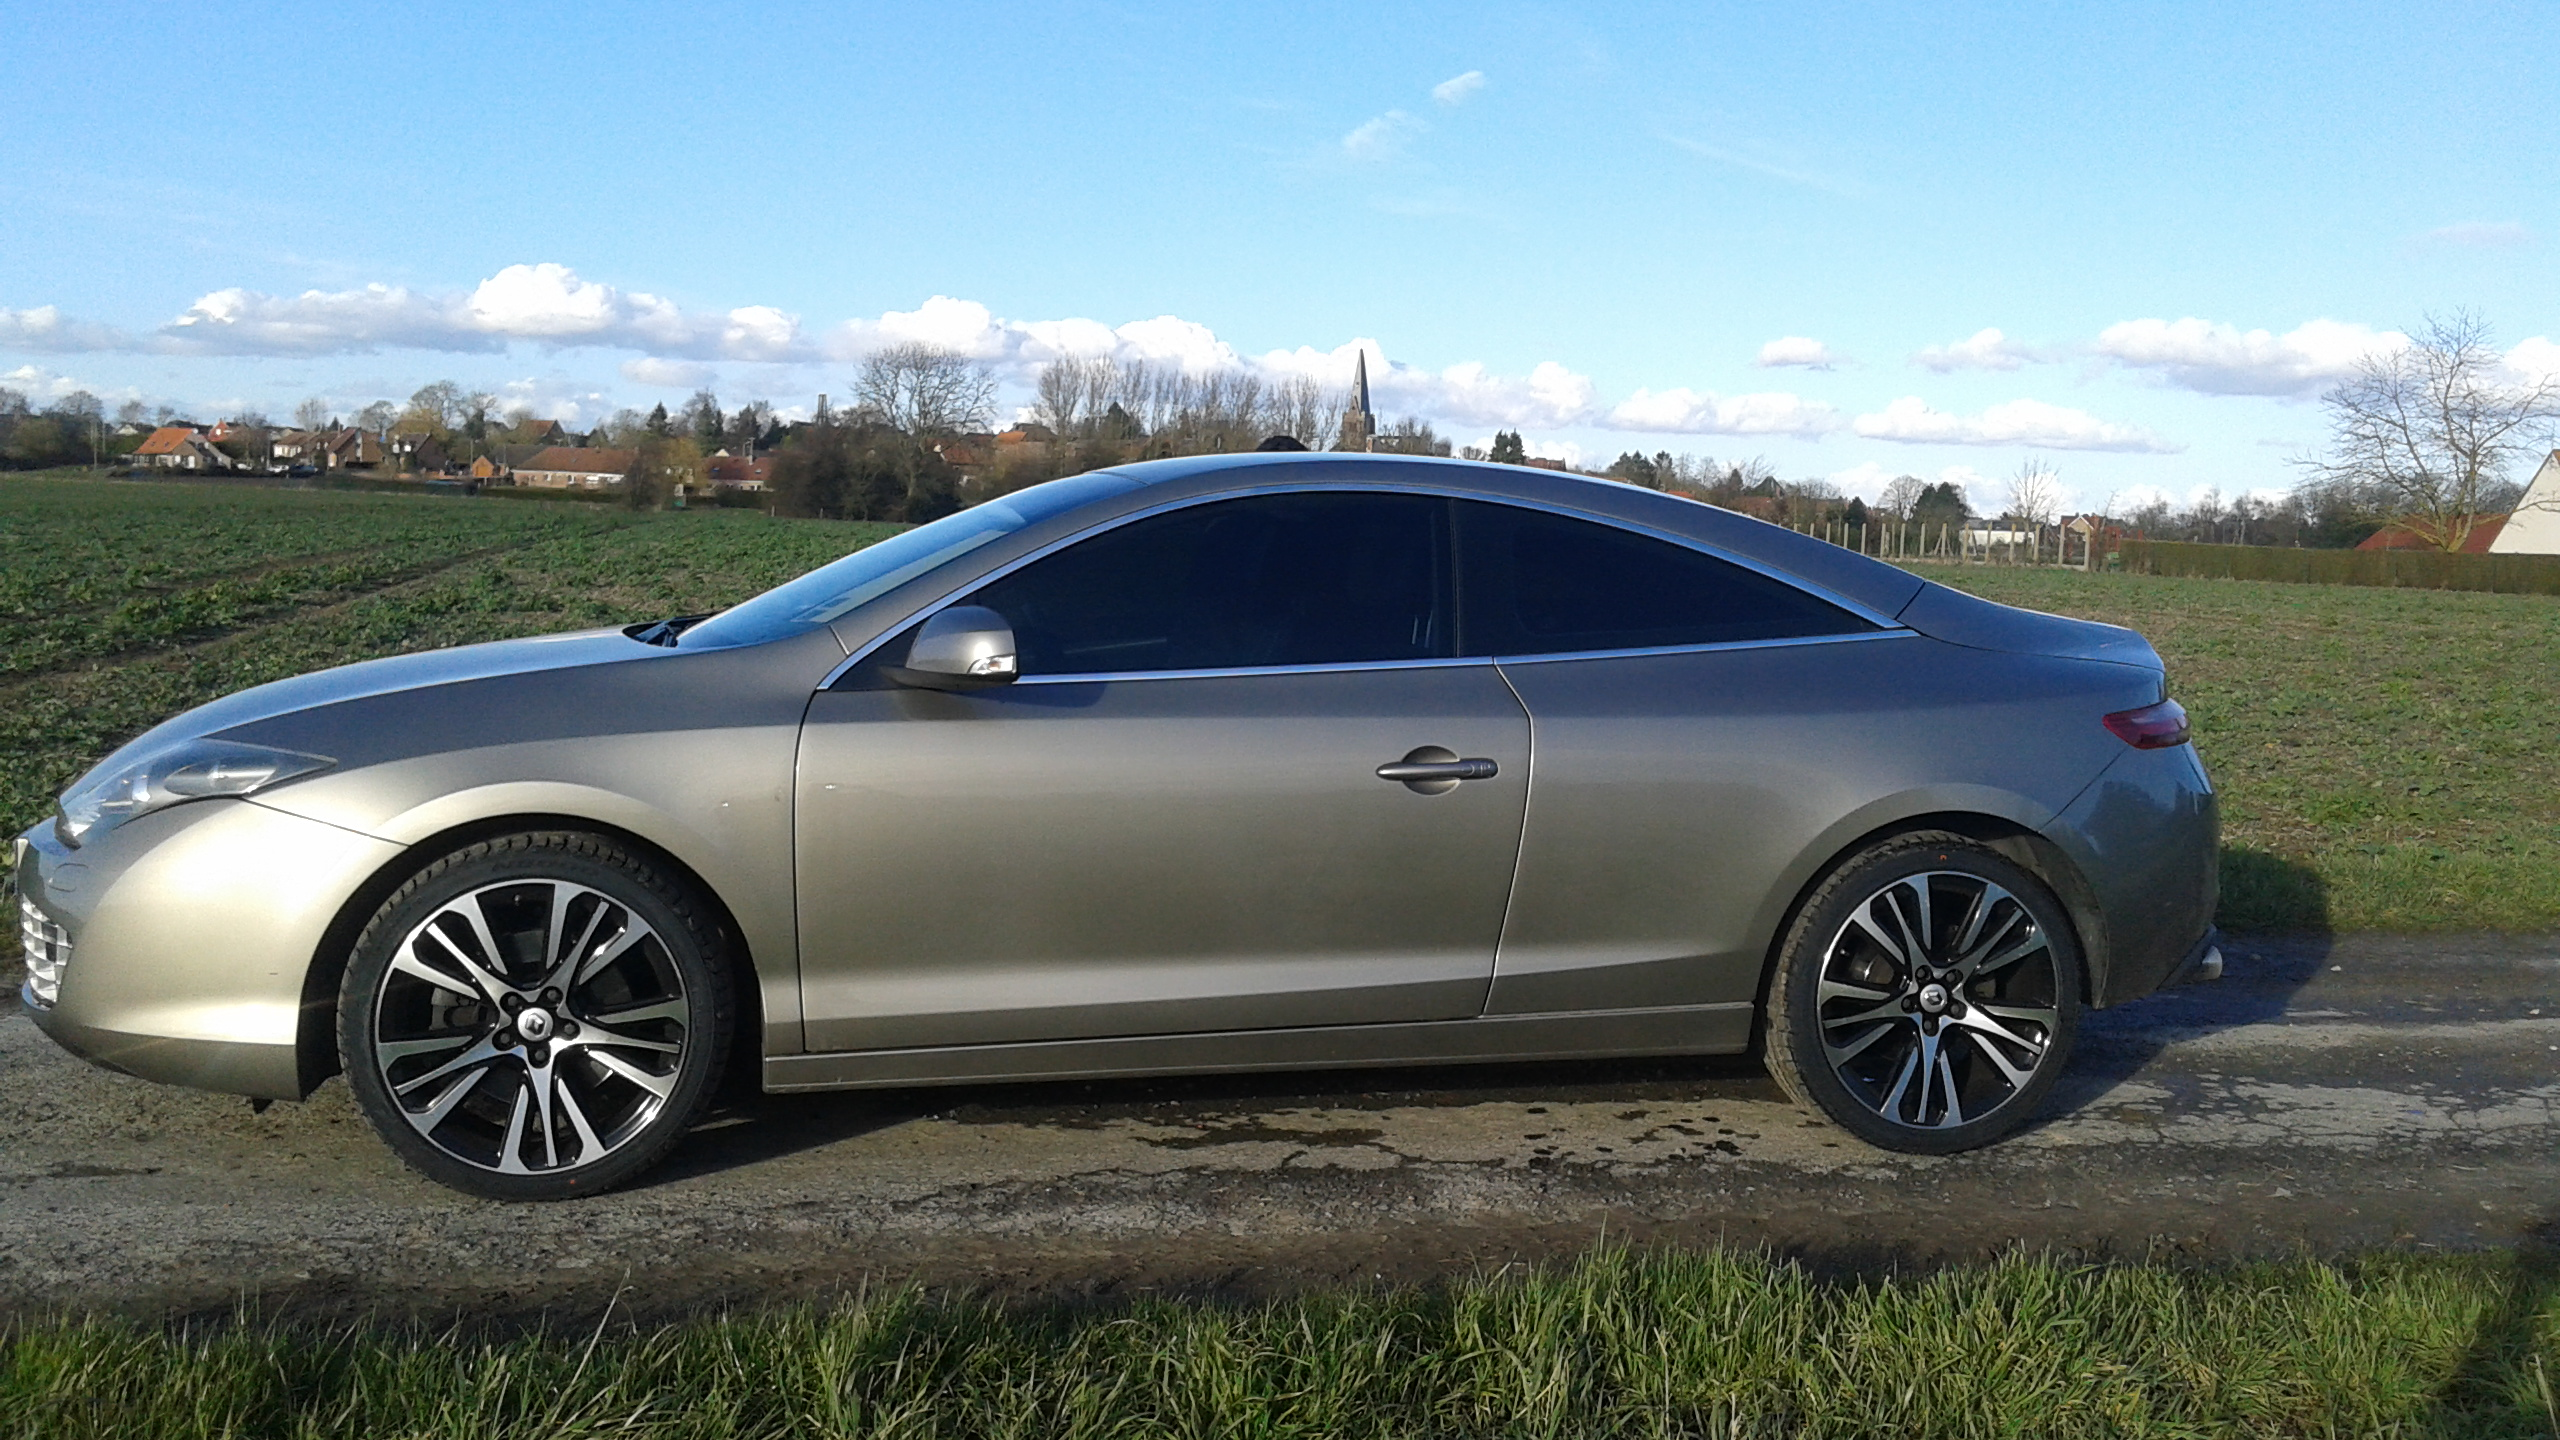 [nathanjo] Laguna III coupé initiale 3.0 dCi 235 - Page 3 20160304170239